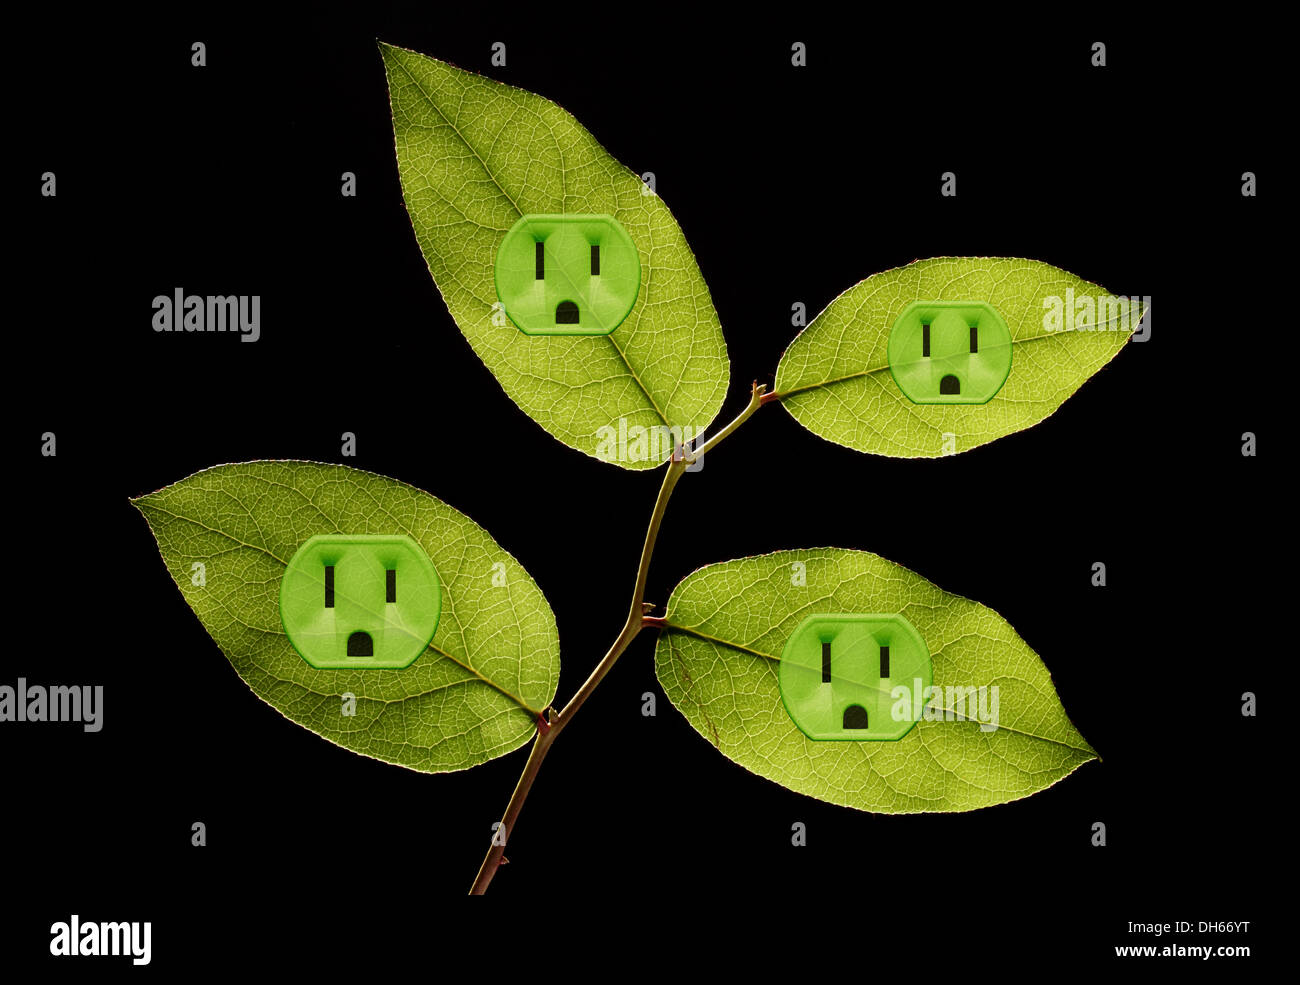 Four green plant leaves with green colored electrical outlets added. Black background - Stock Image